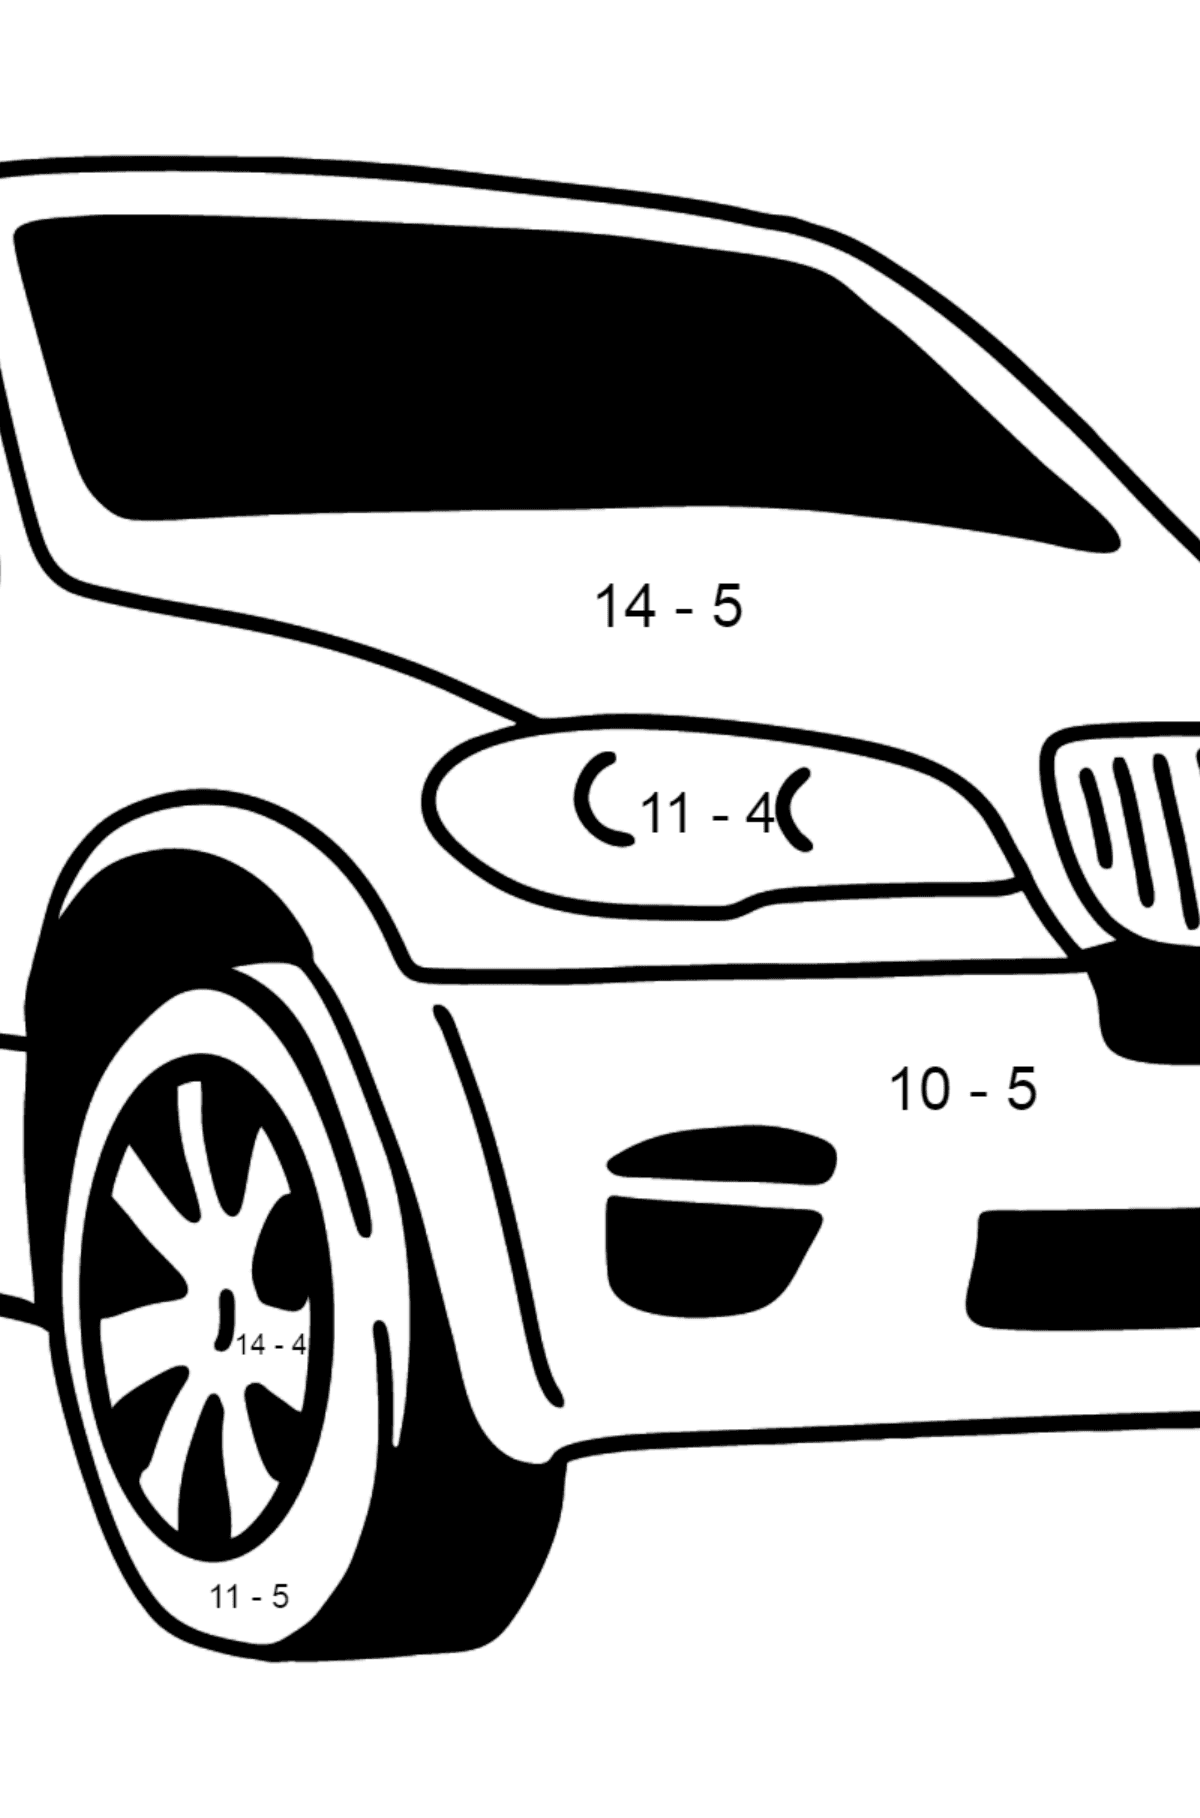 BMW X6 Crossover coloring page - Math Coloring - Subtraction for Kids